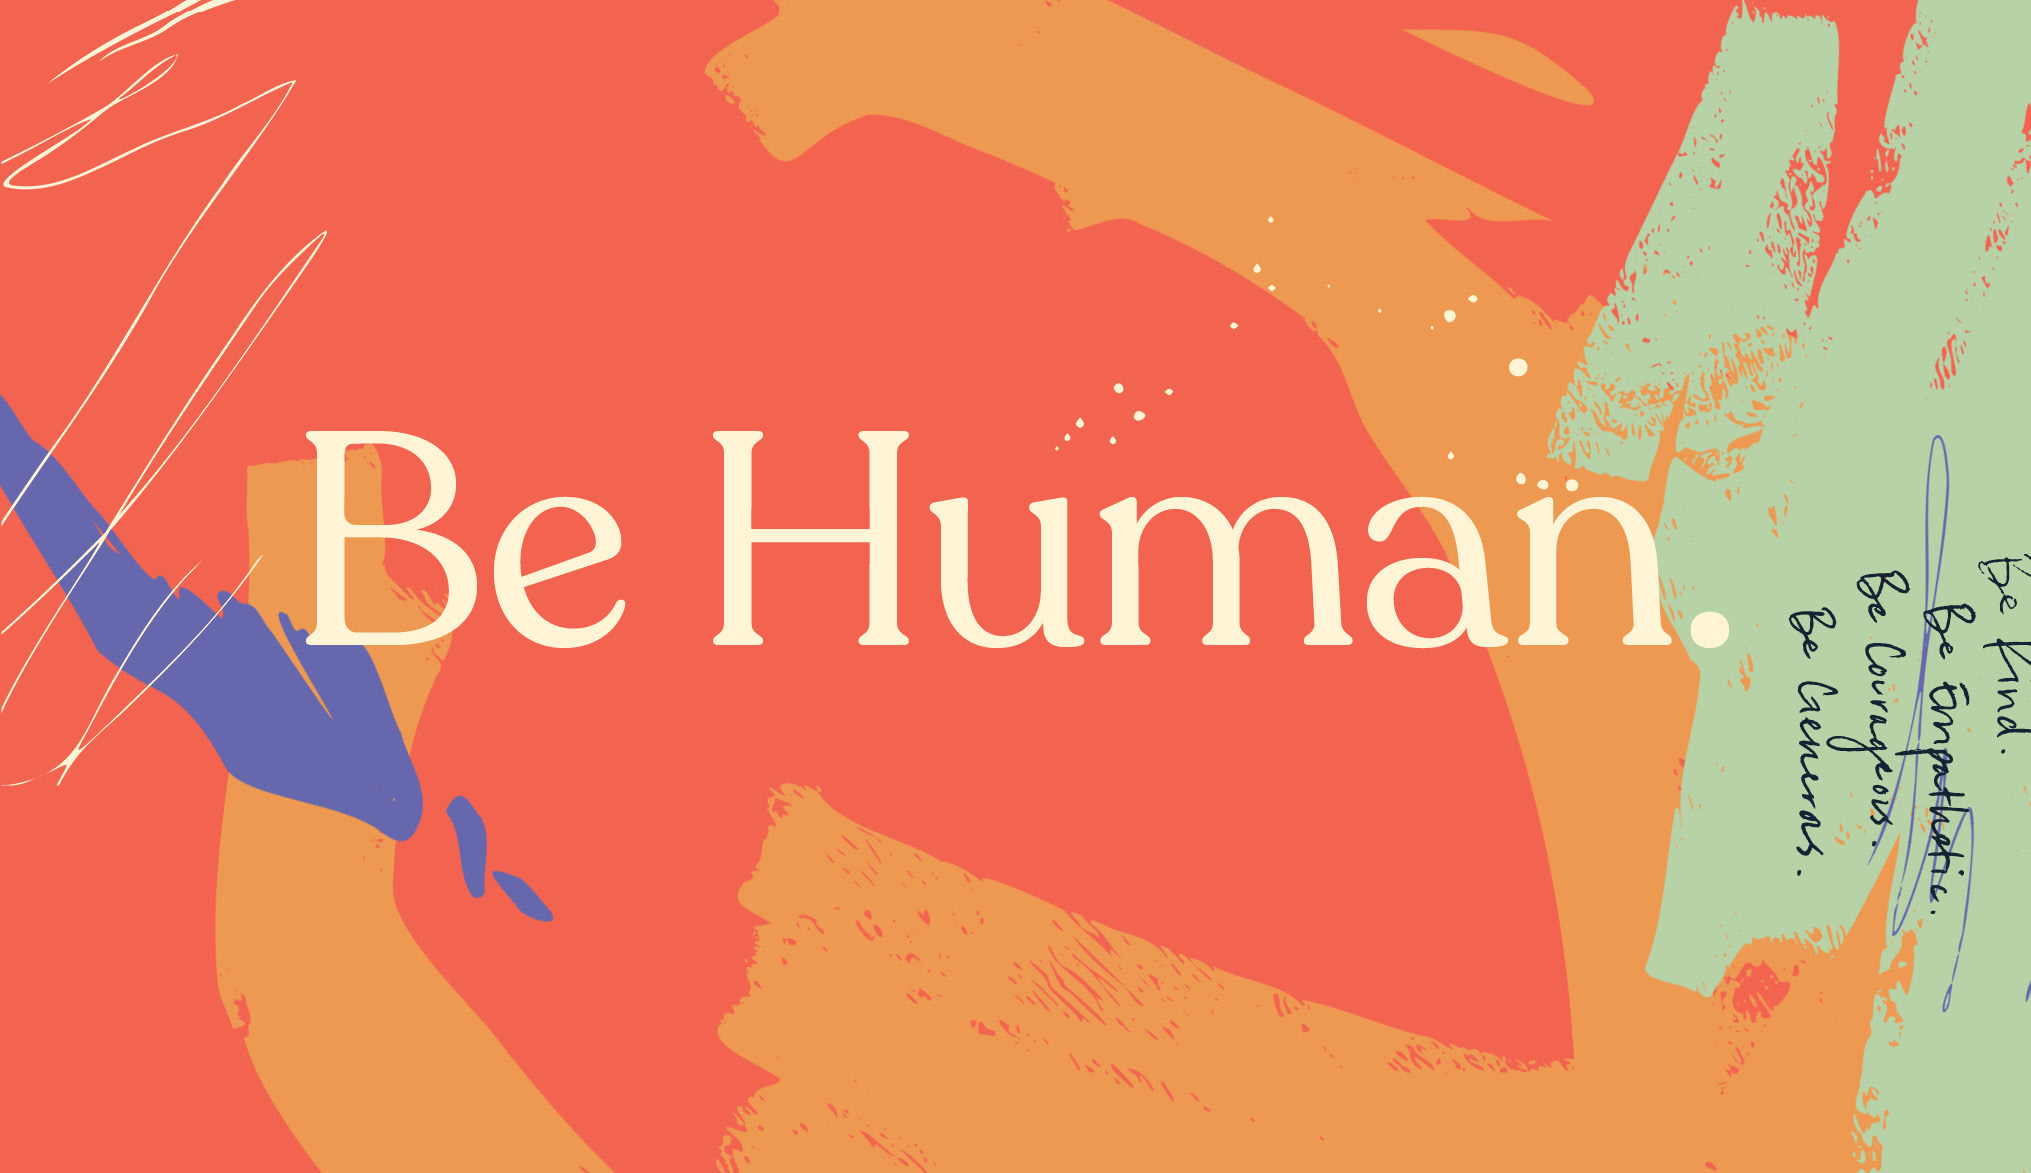 Are You Ready to Be Human Again?